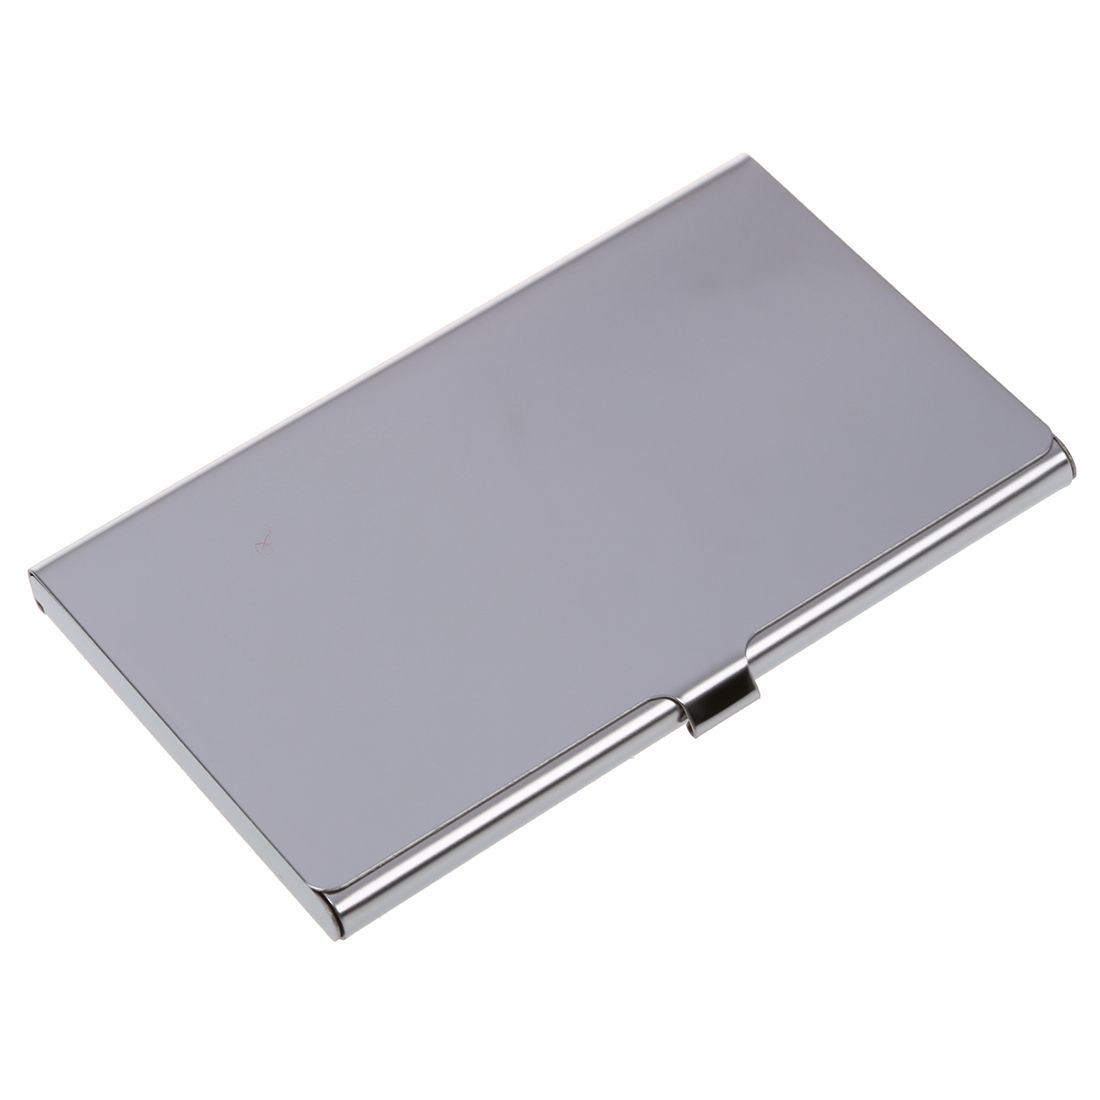 Stainless Steel Aluminum Case Transmission Case Commercial Business Card Credit Card holder smooth